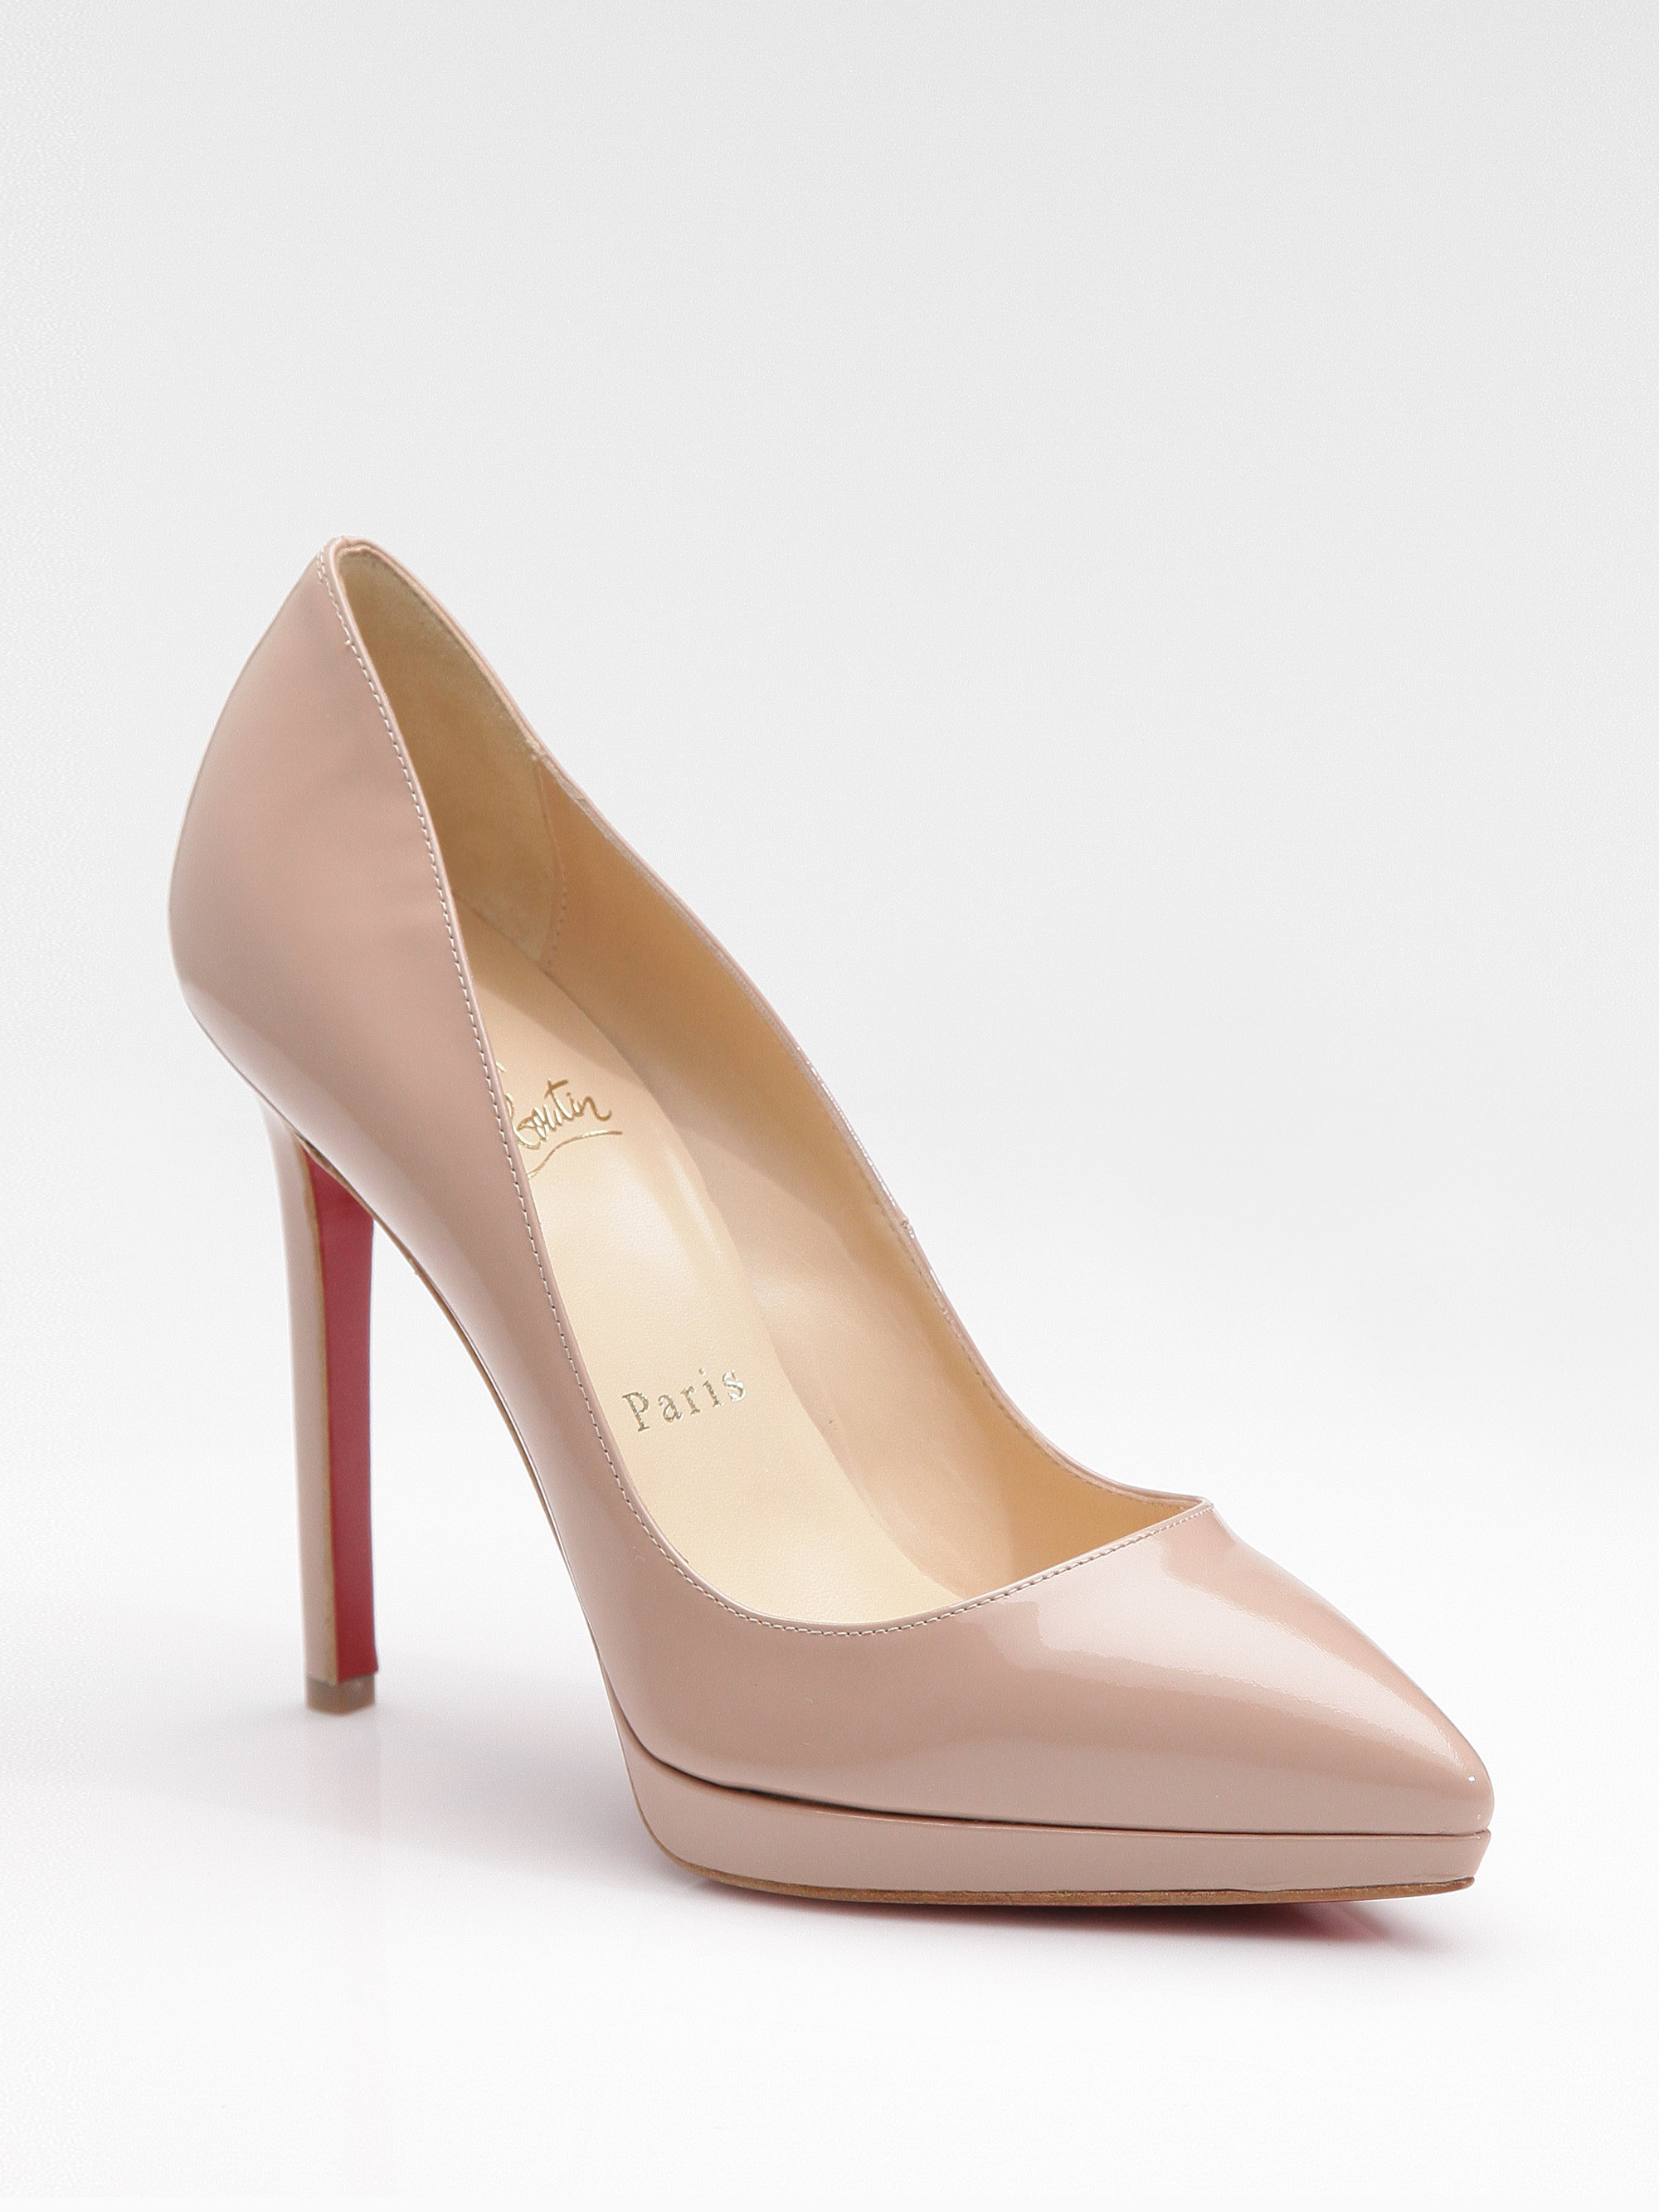 1aa5f5081da2 Gallery. Previously sold at  Saks Fifth Avenue · Women s Christian  Louboutin Pigalle Women s Christian Louboutin Plato